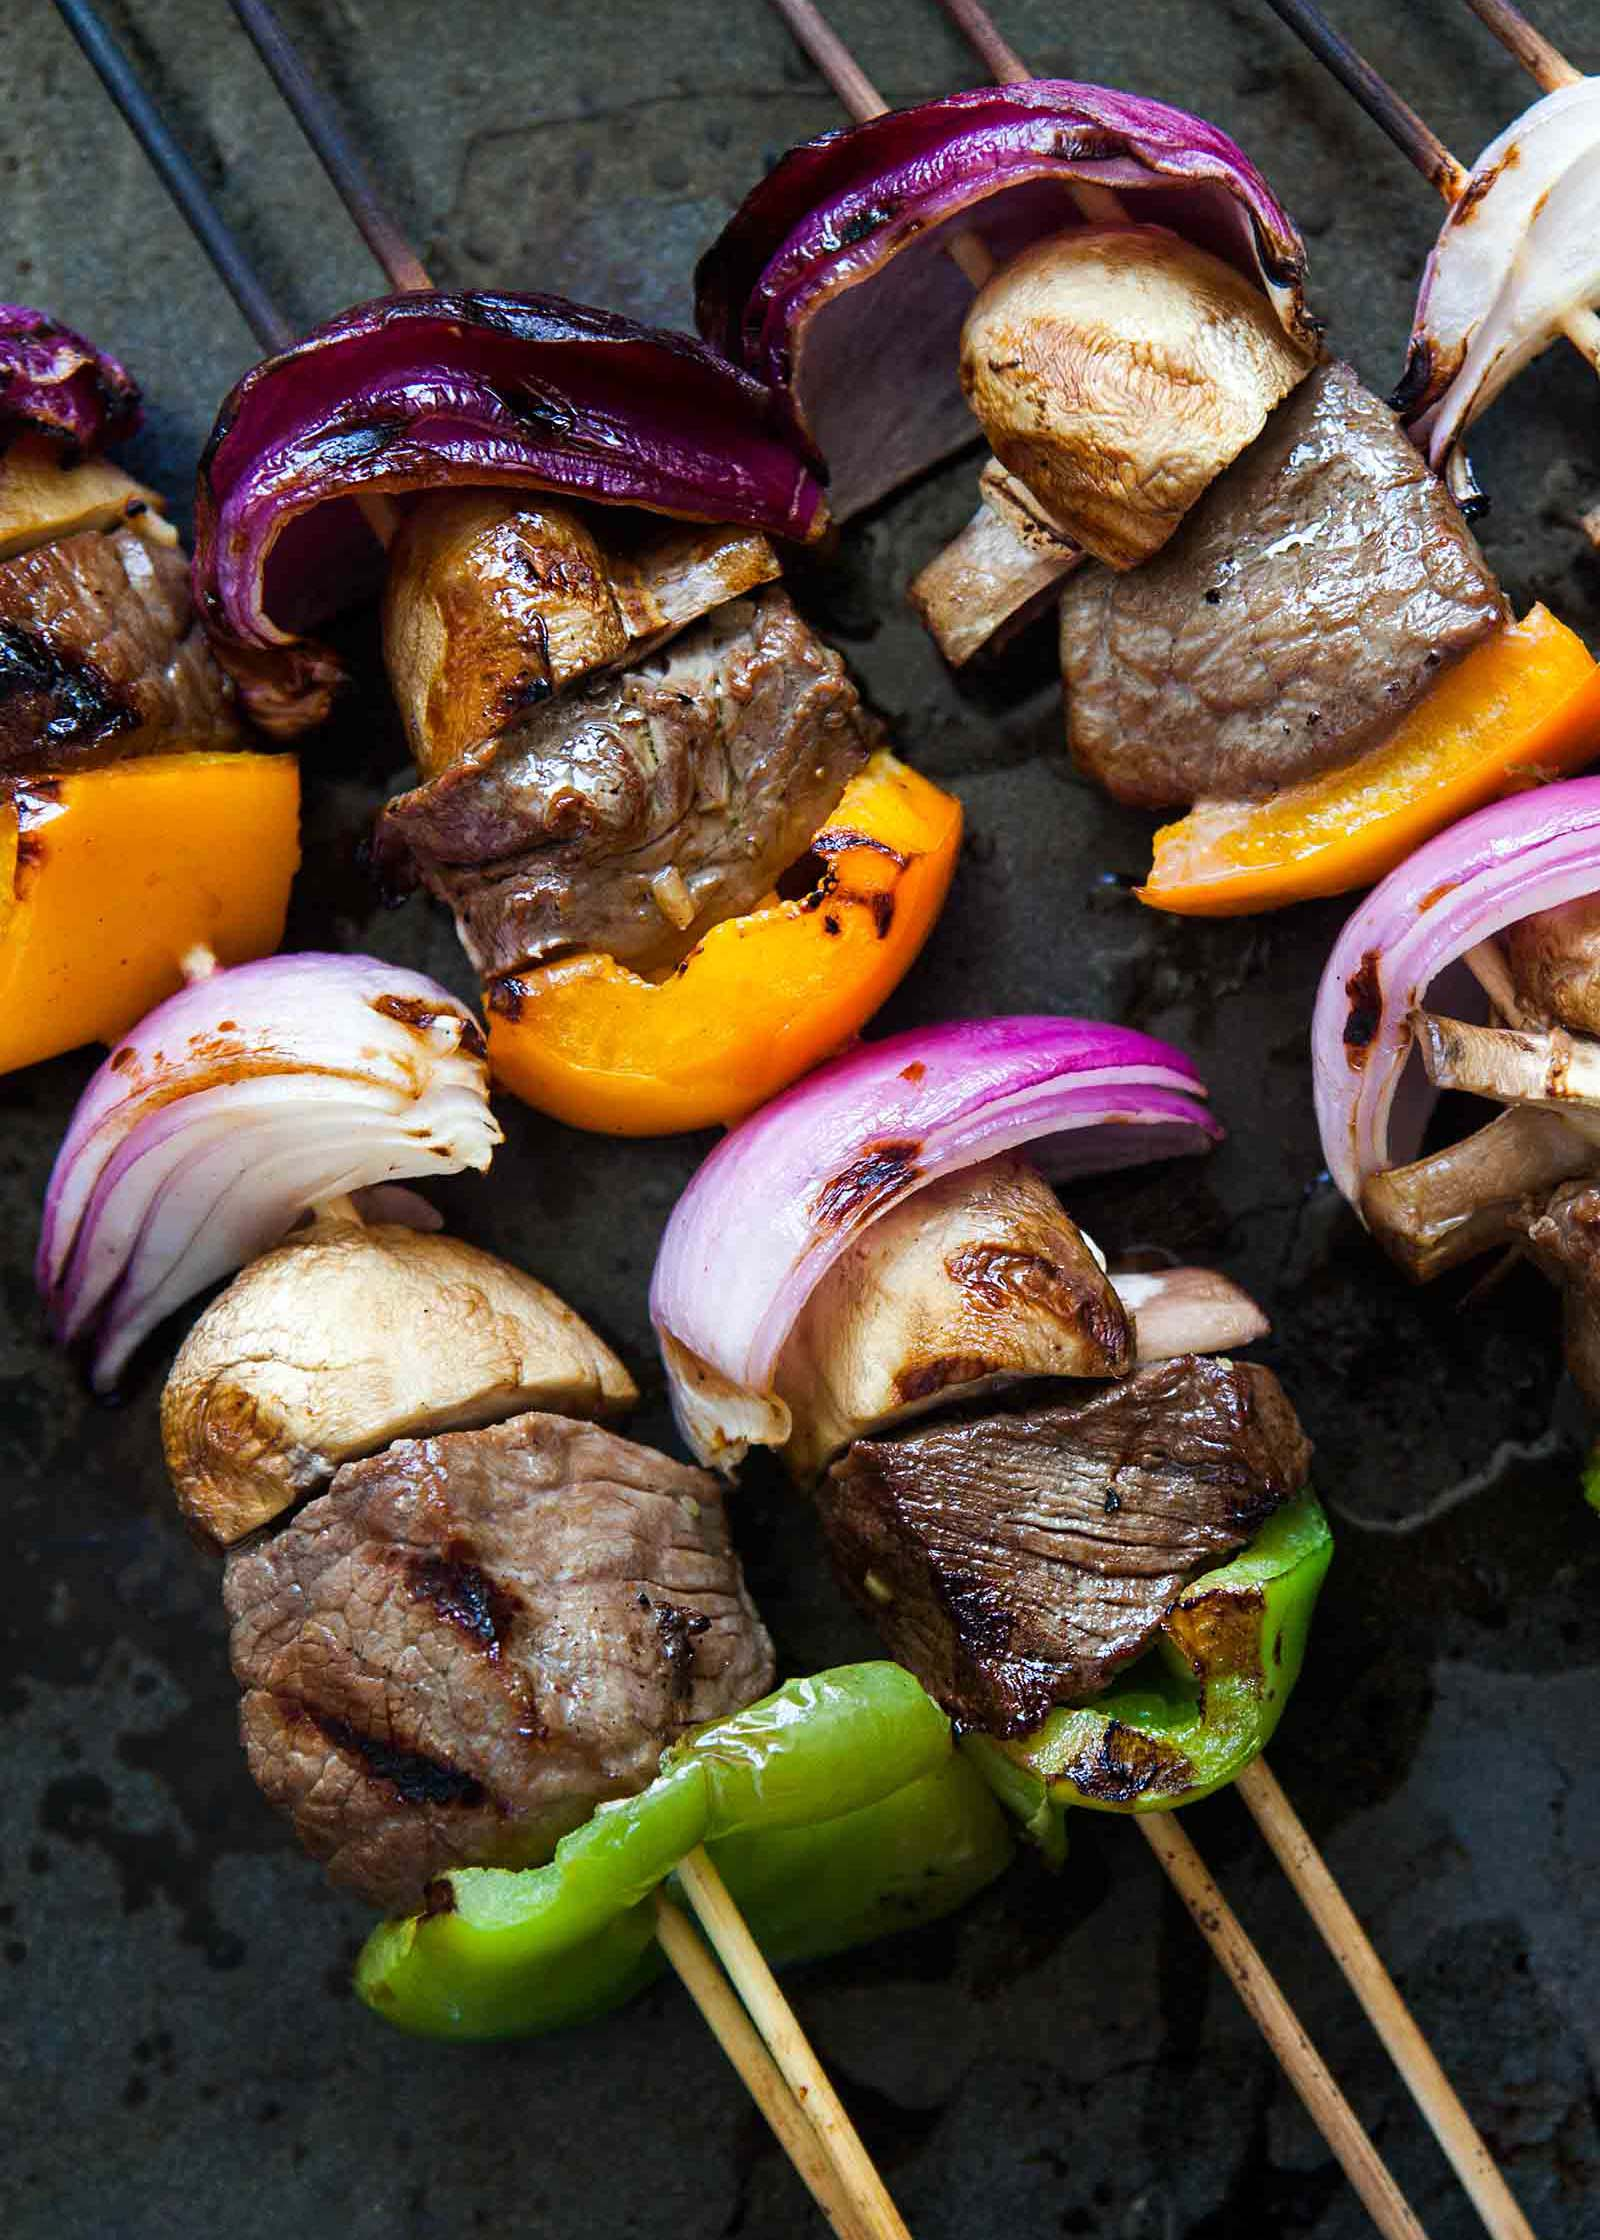 Beef Kabobs with onions, mushrooms, and bell peppers on skewers